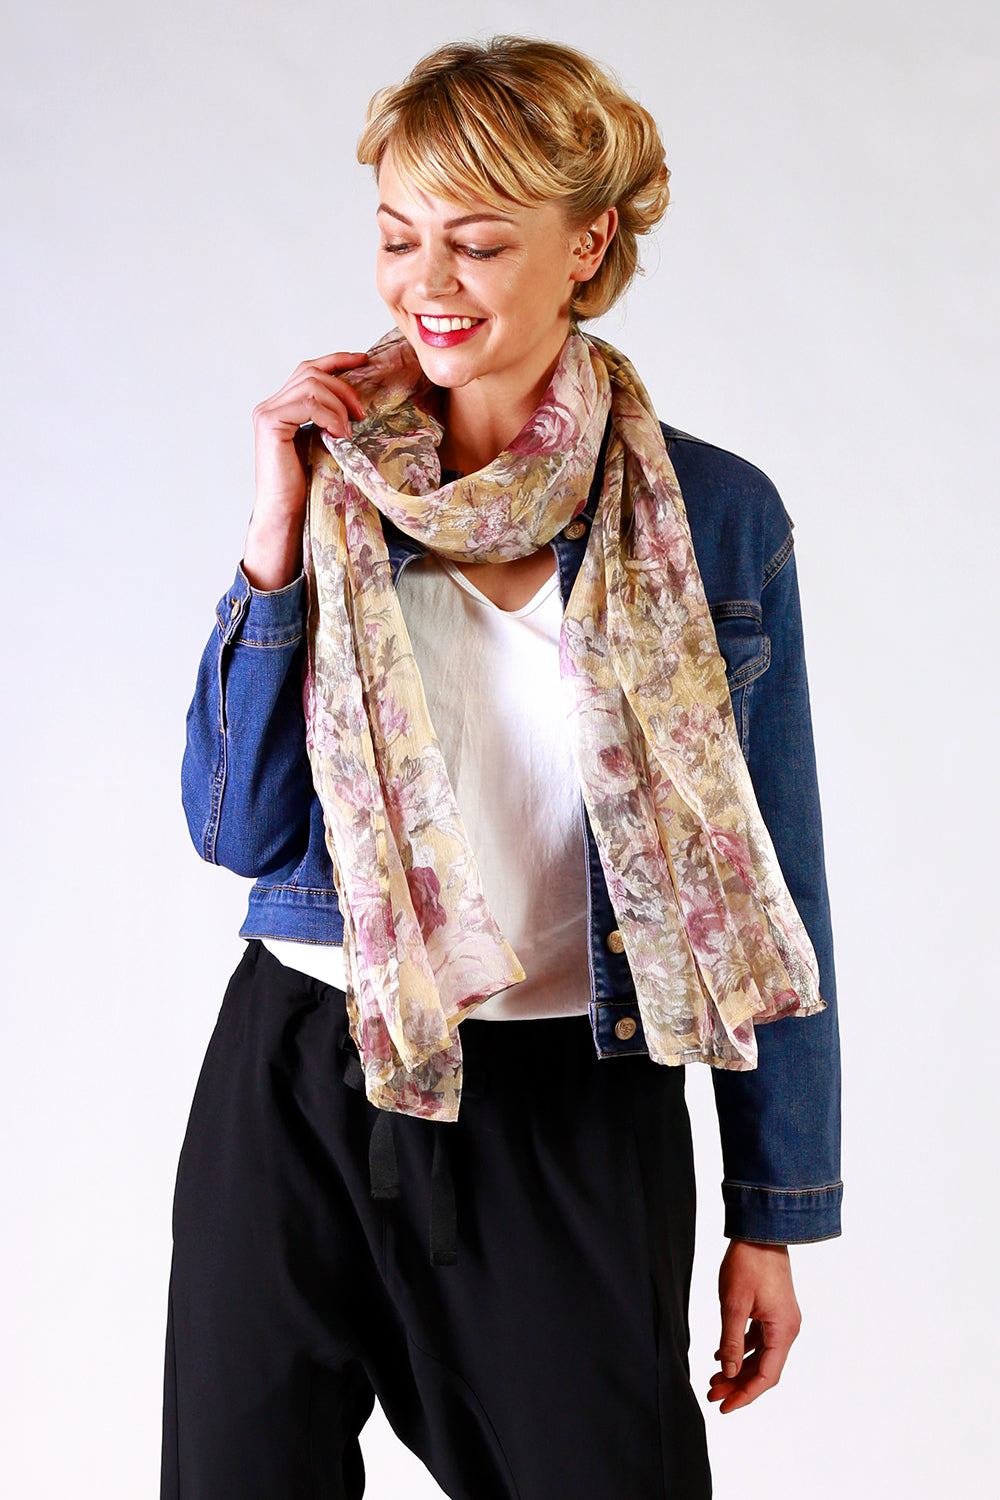 Lana Louise Scarf | Yellow Floral Scarf | Designer Fashion Accessories | Scarves | Annah Stretton